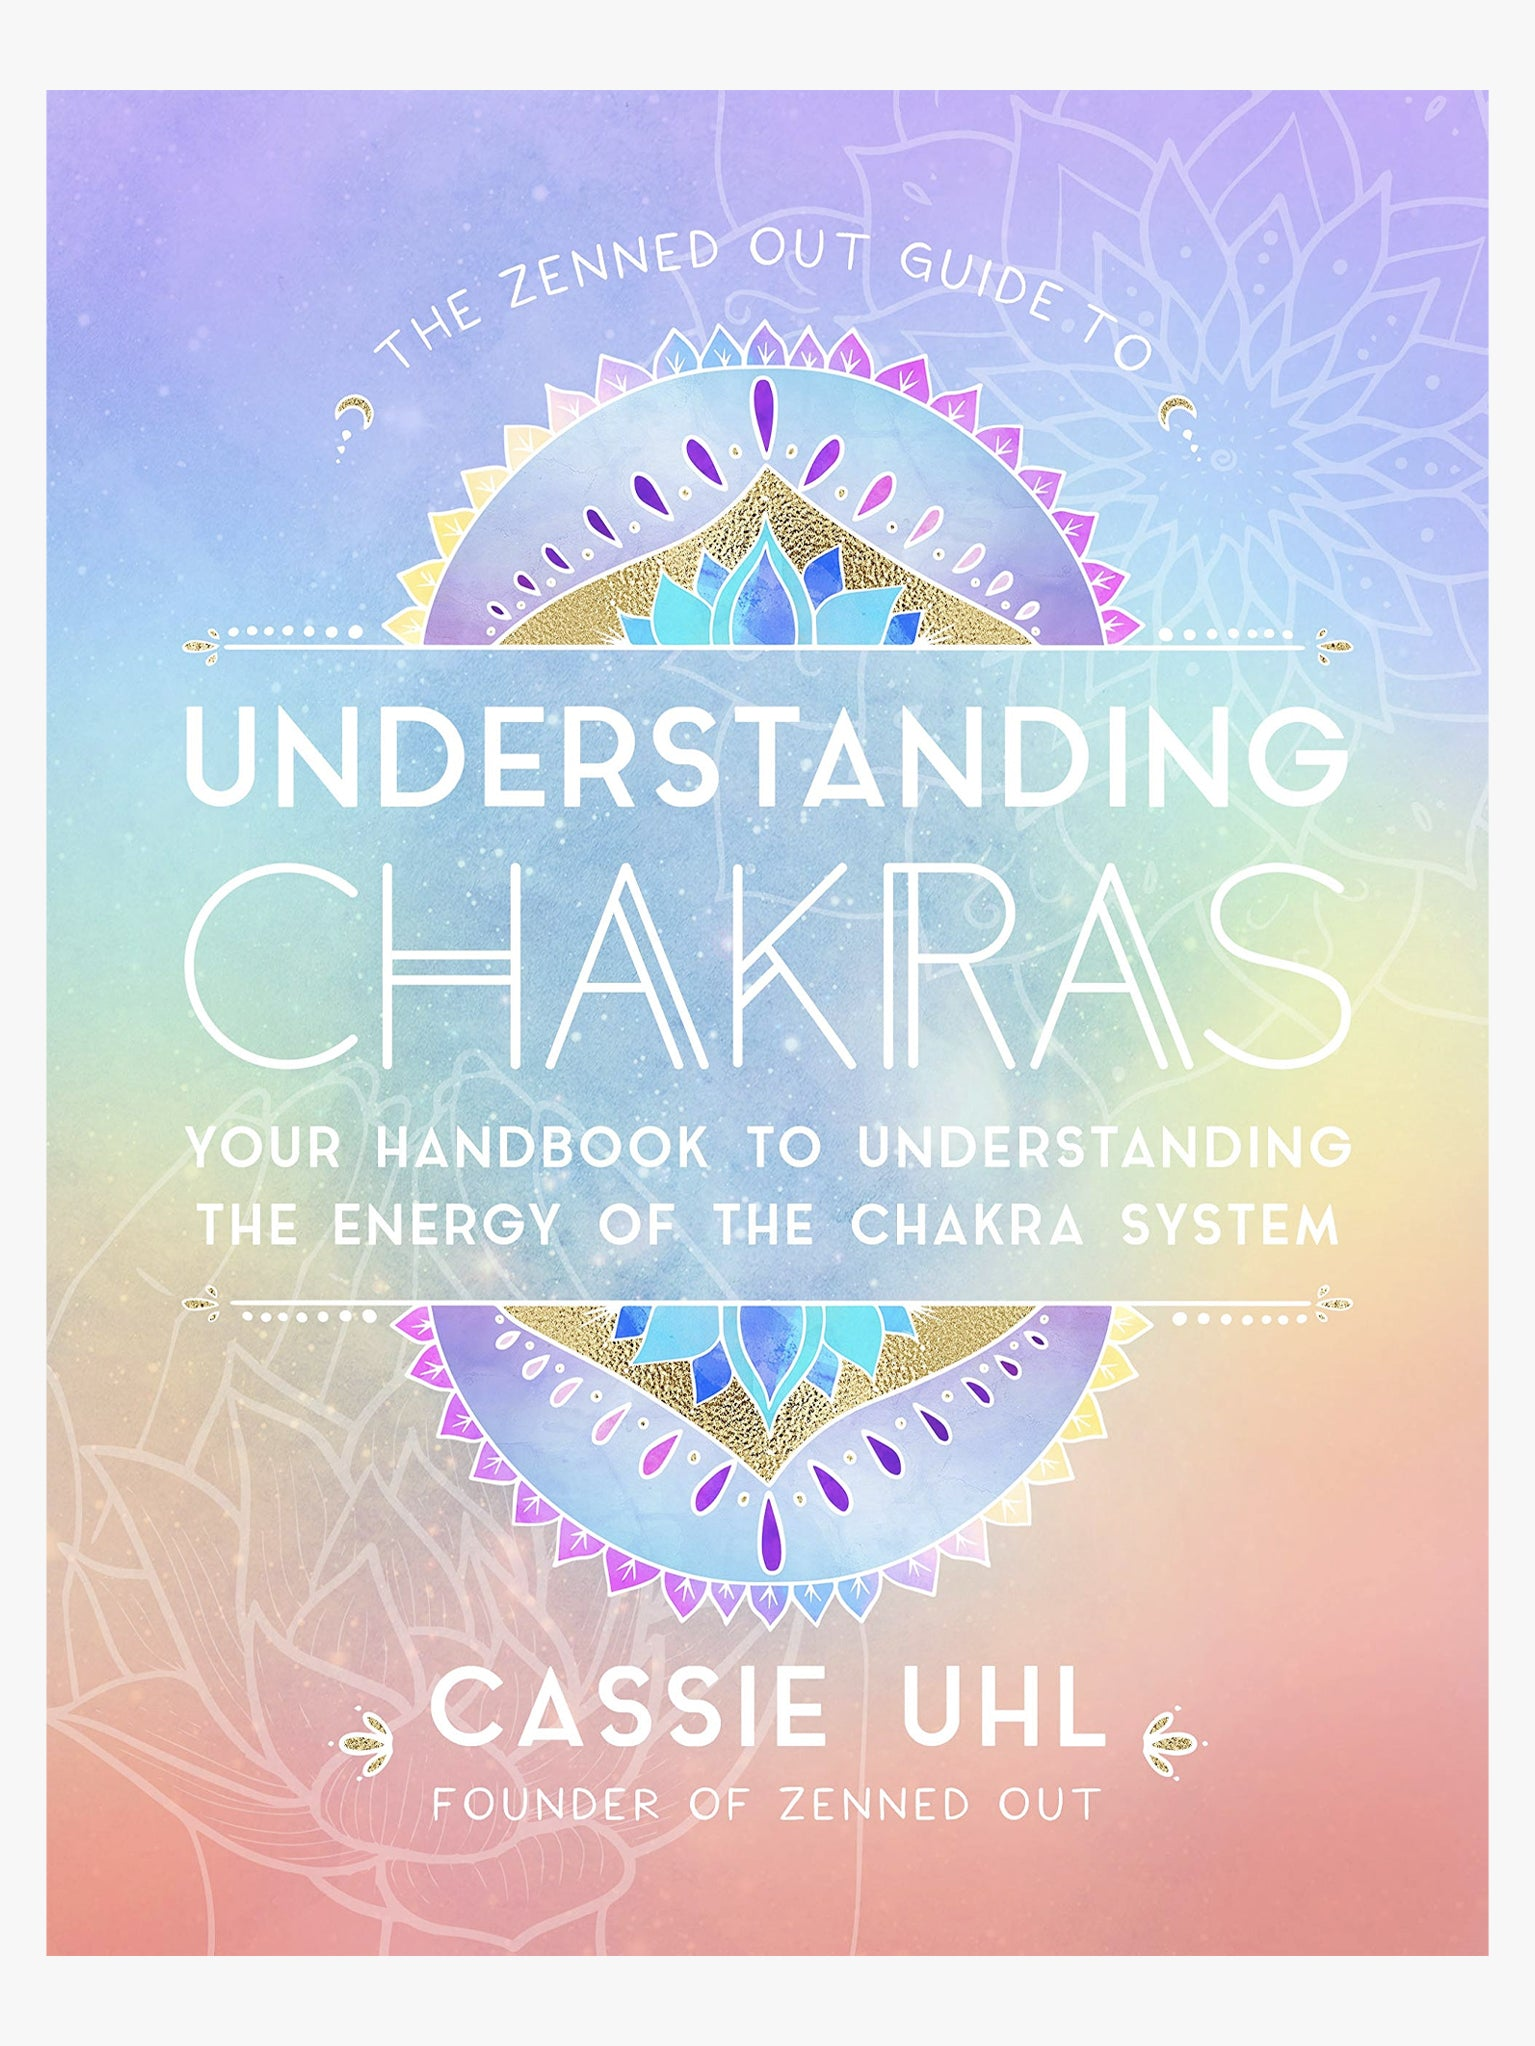 The Zenned Out Guide to Understanding Chakras